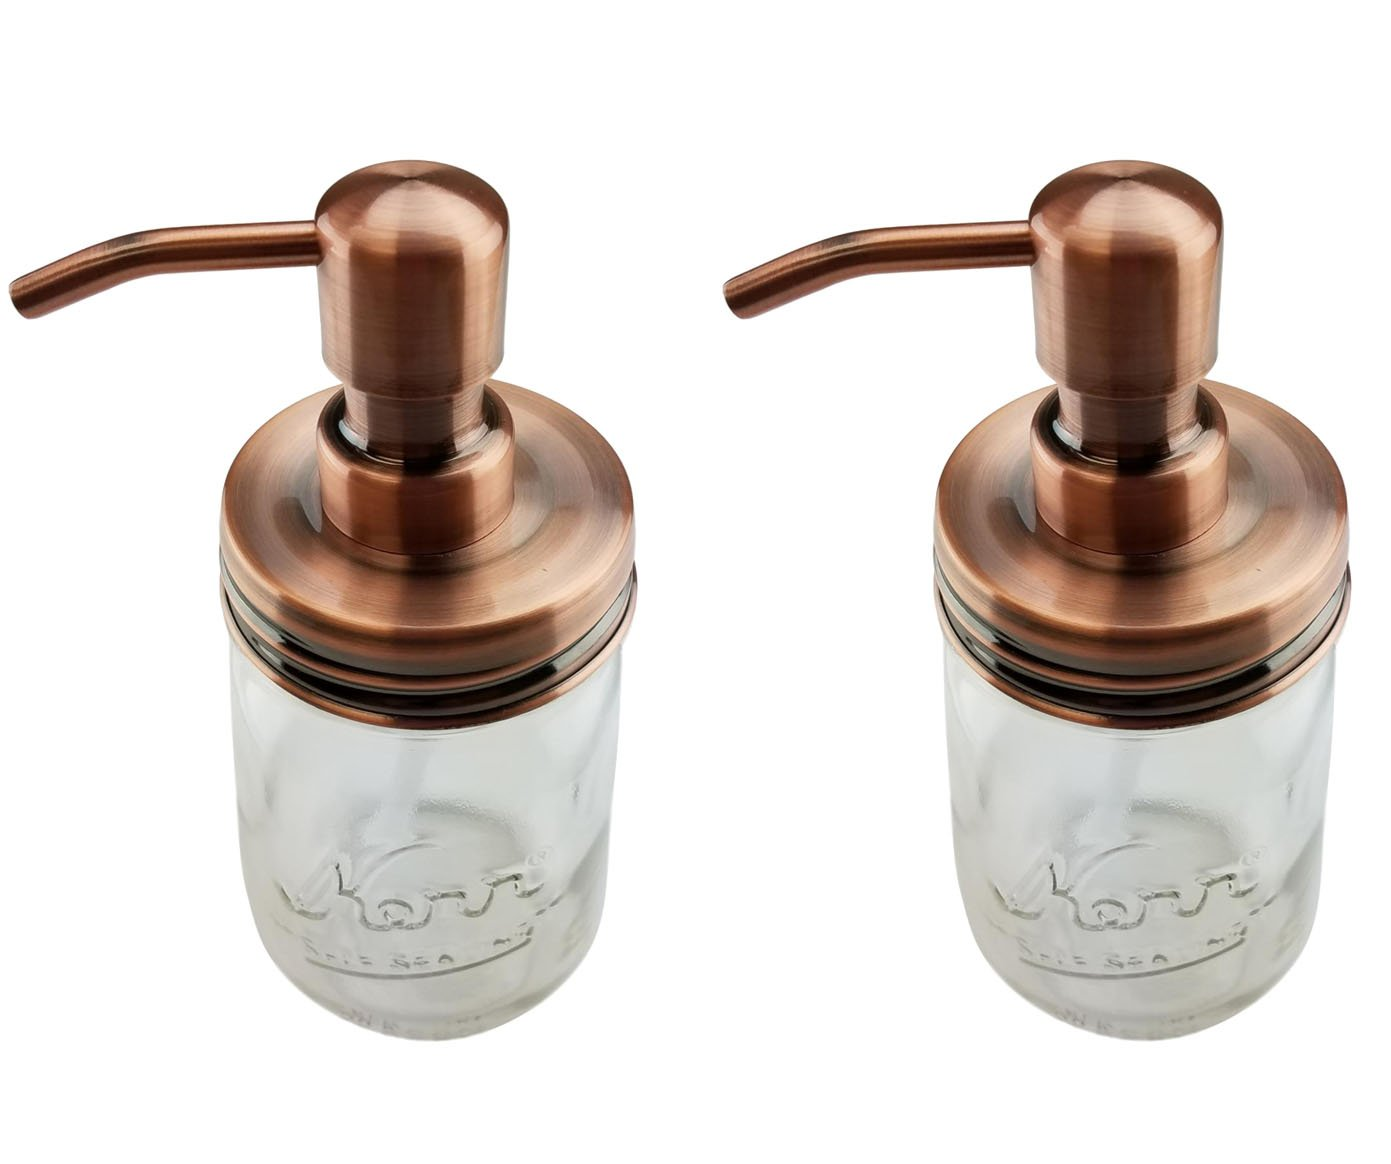 Nighthawk Copper Mason Jar Soap Dispenser Lids | Rust Proof Made of Stainless Steel | Bathroom/Kitchen Accessories 2 Pack Set - (Jar Not Included) (Copper, 2)